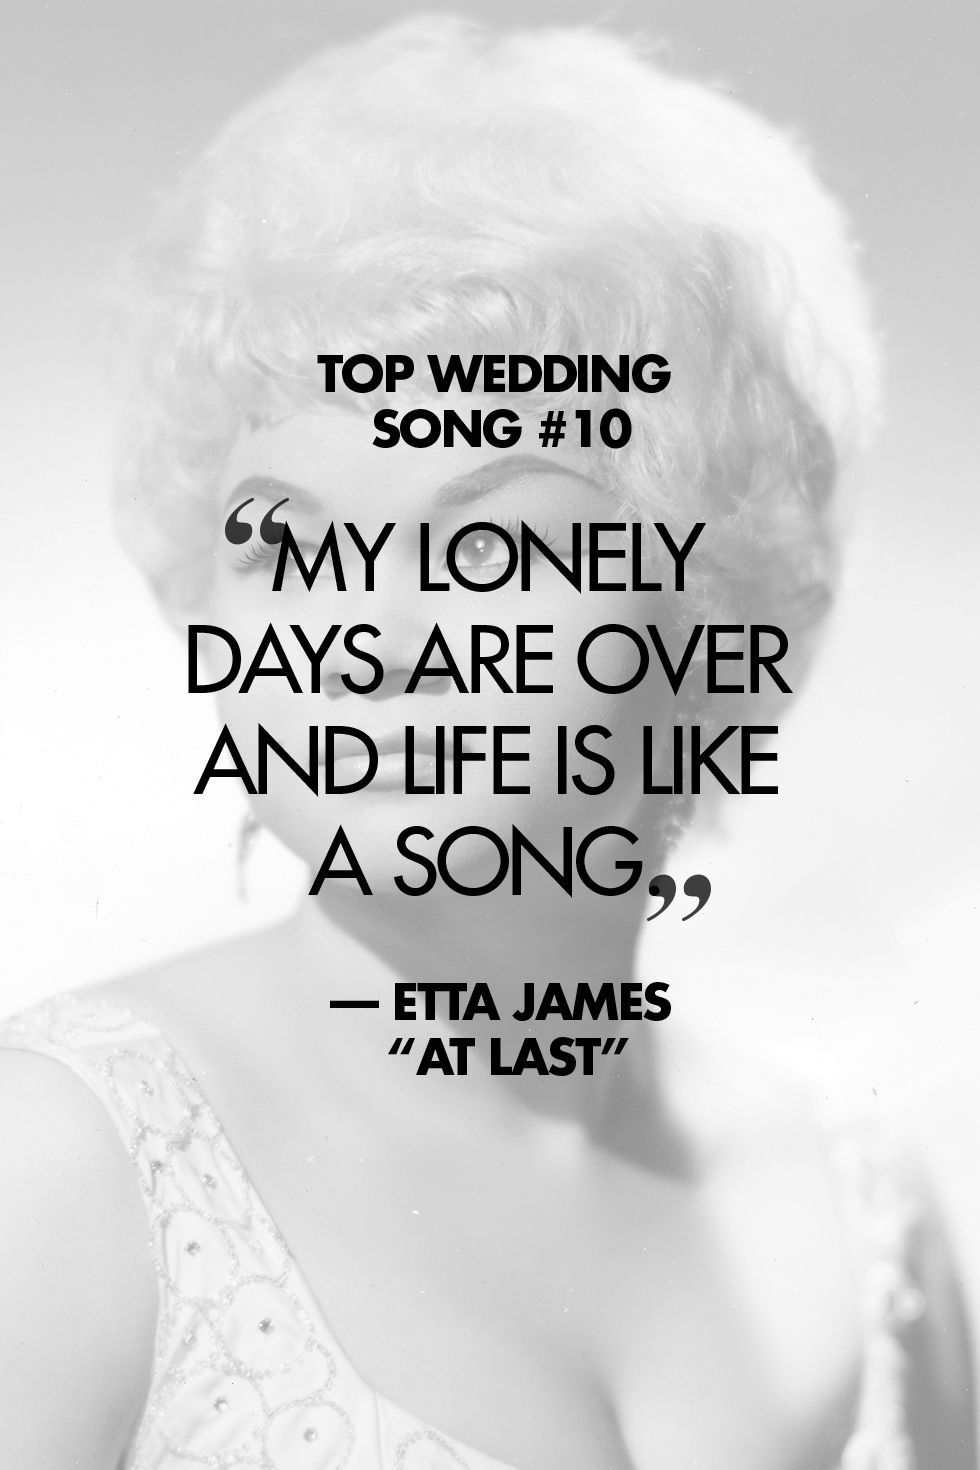 50 Best Wedding Songs - Top First Dance Song Ideas for Weddings